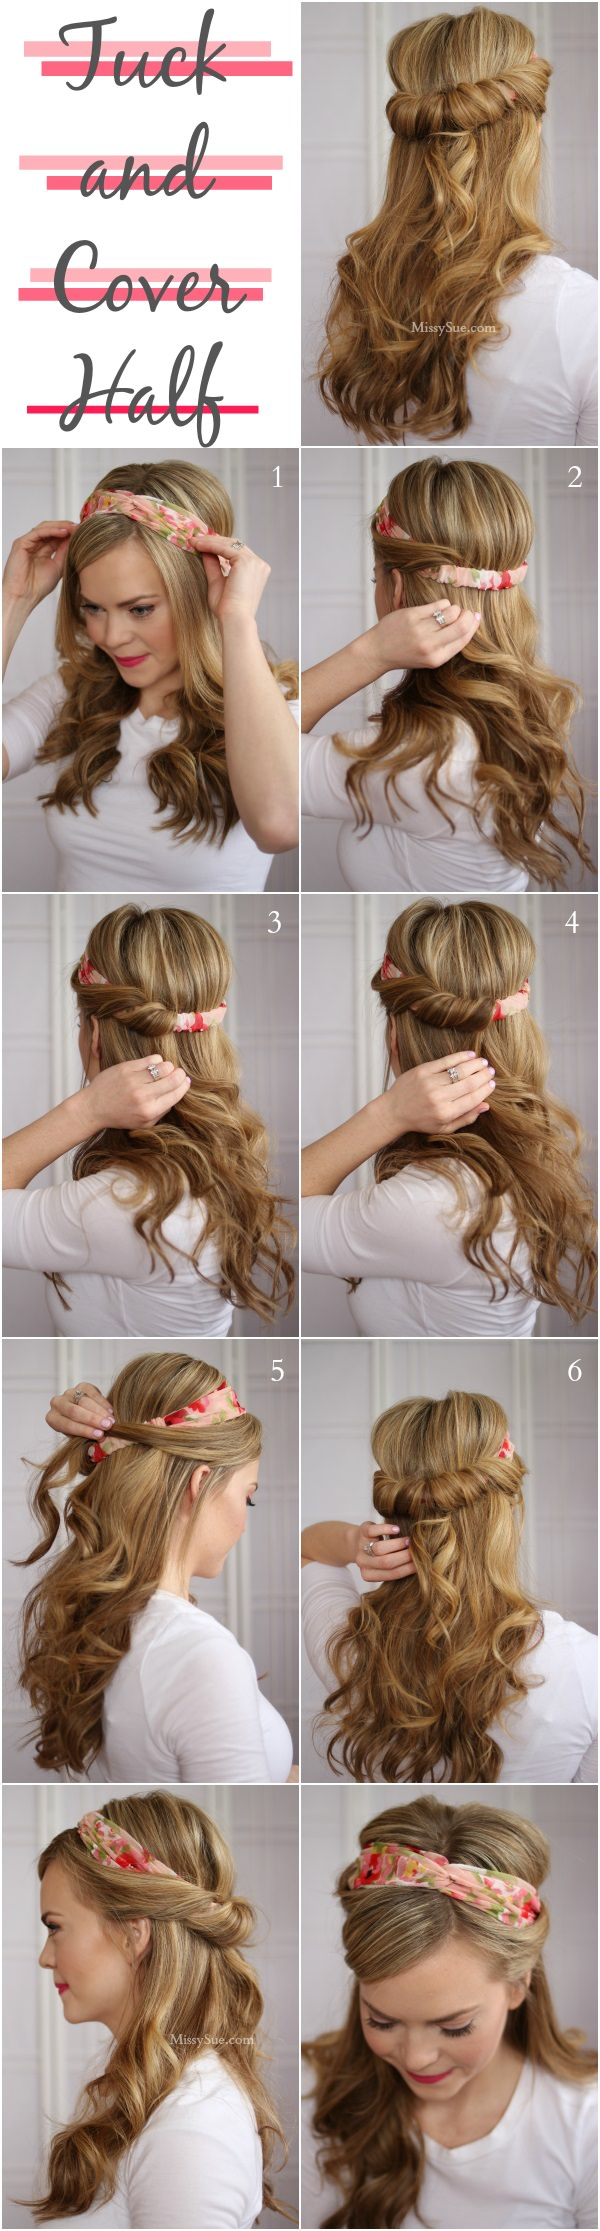 Tucked Hairstyle Tutorial